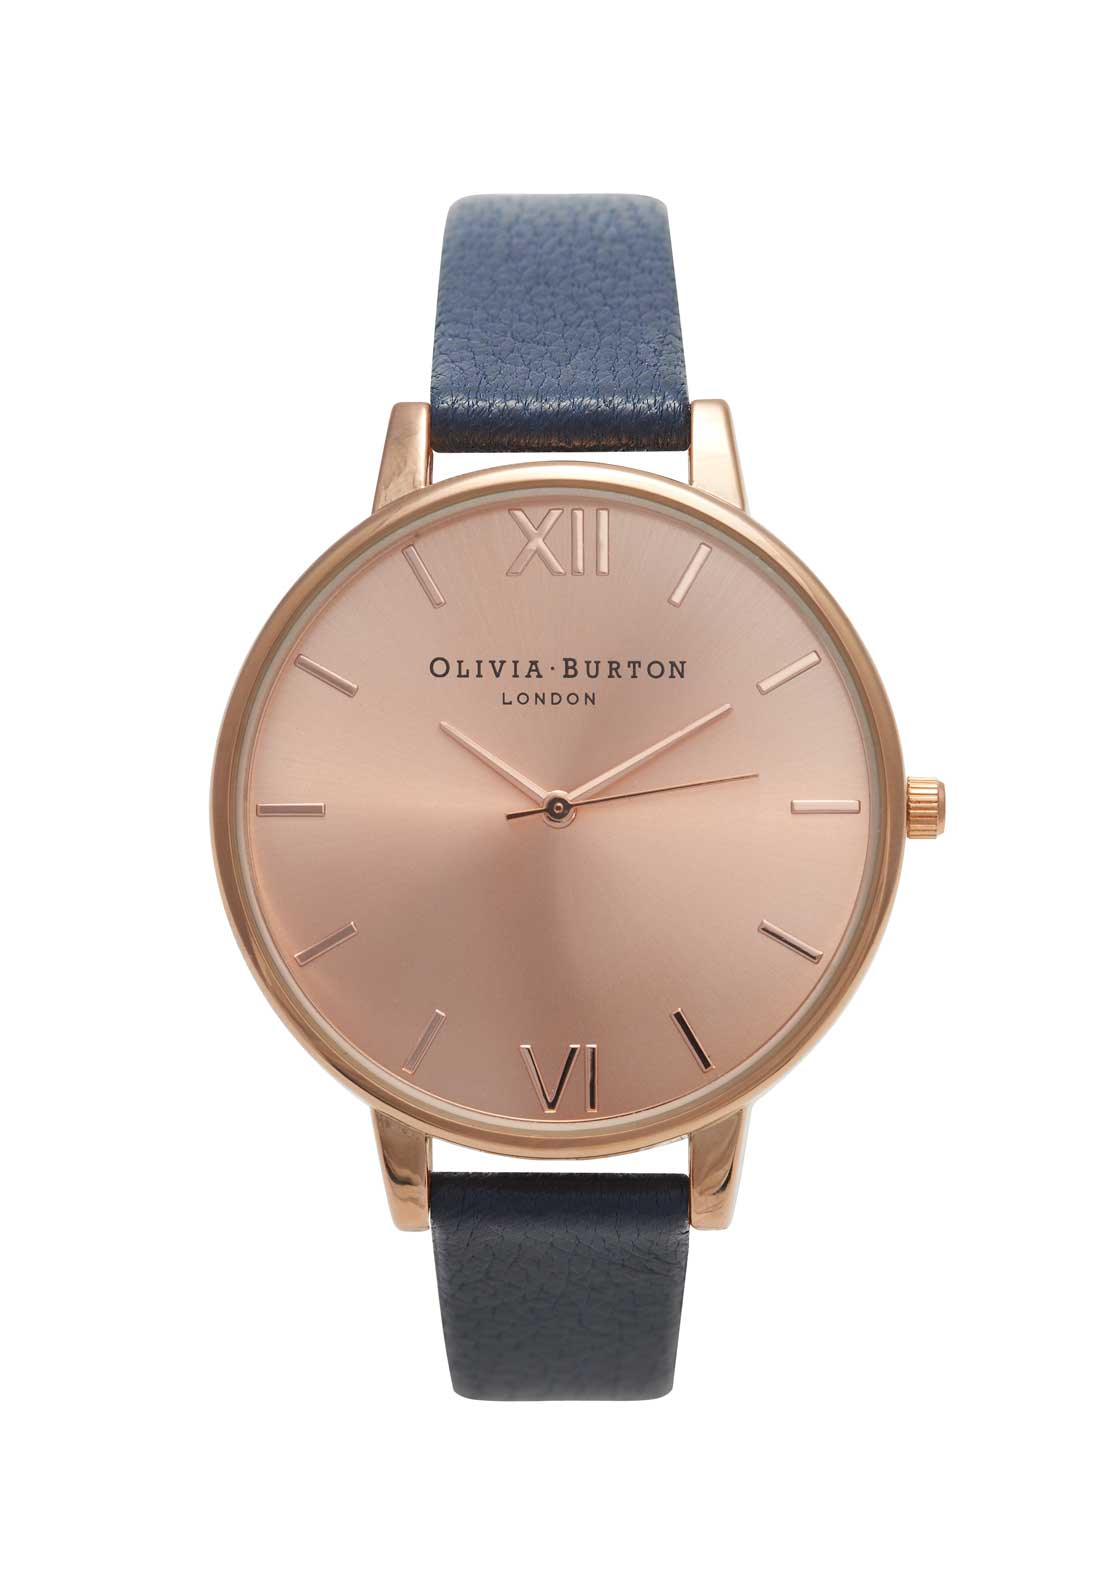 Olivia Burton Big Dial Watch in Navy, Rose Gold